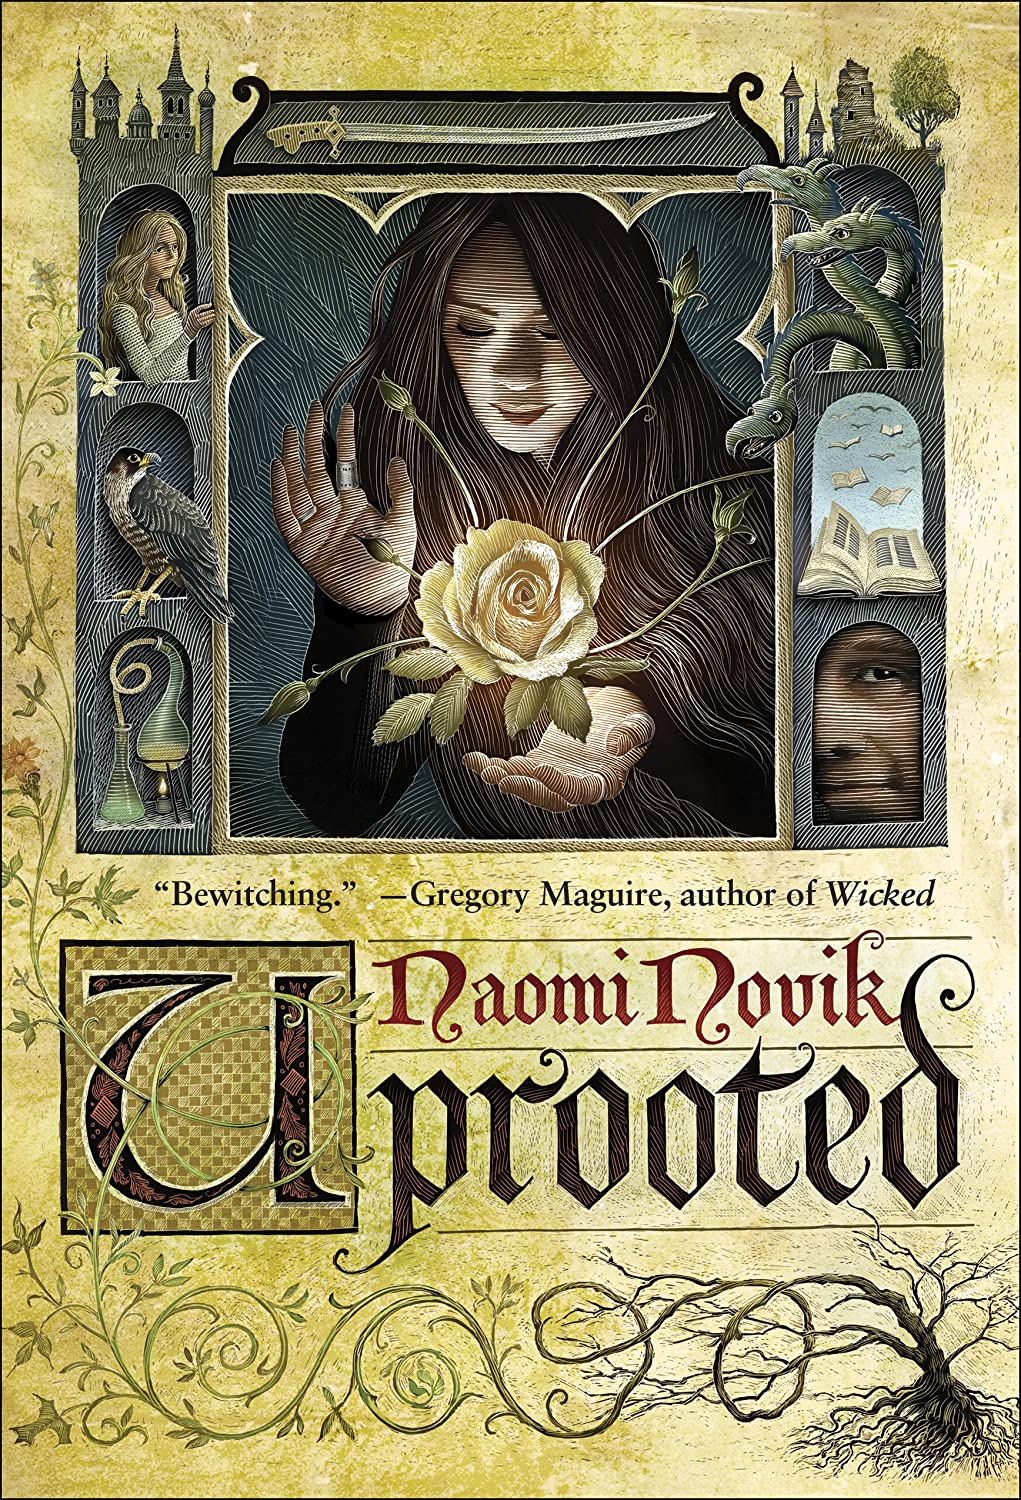 UPROOTED by Naomi Novik (US cover)